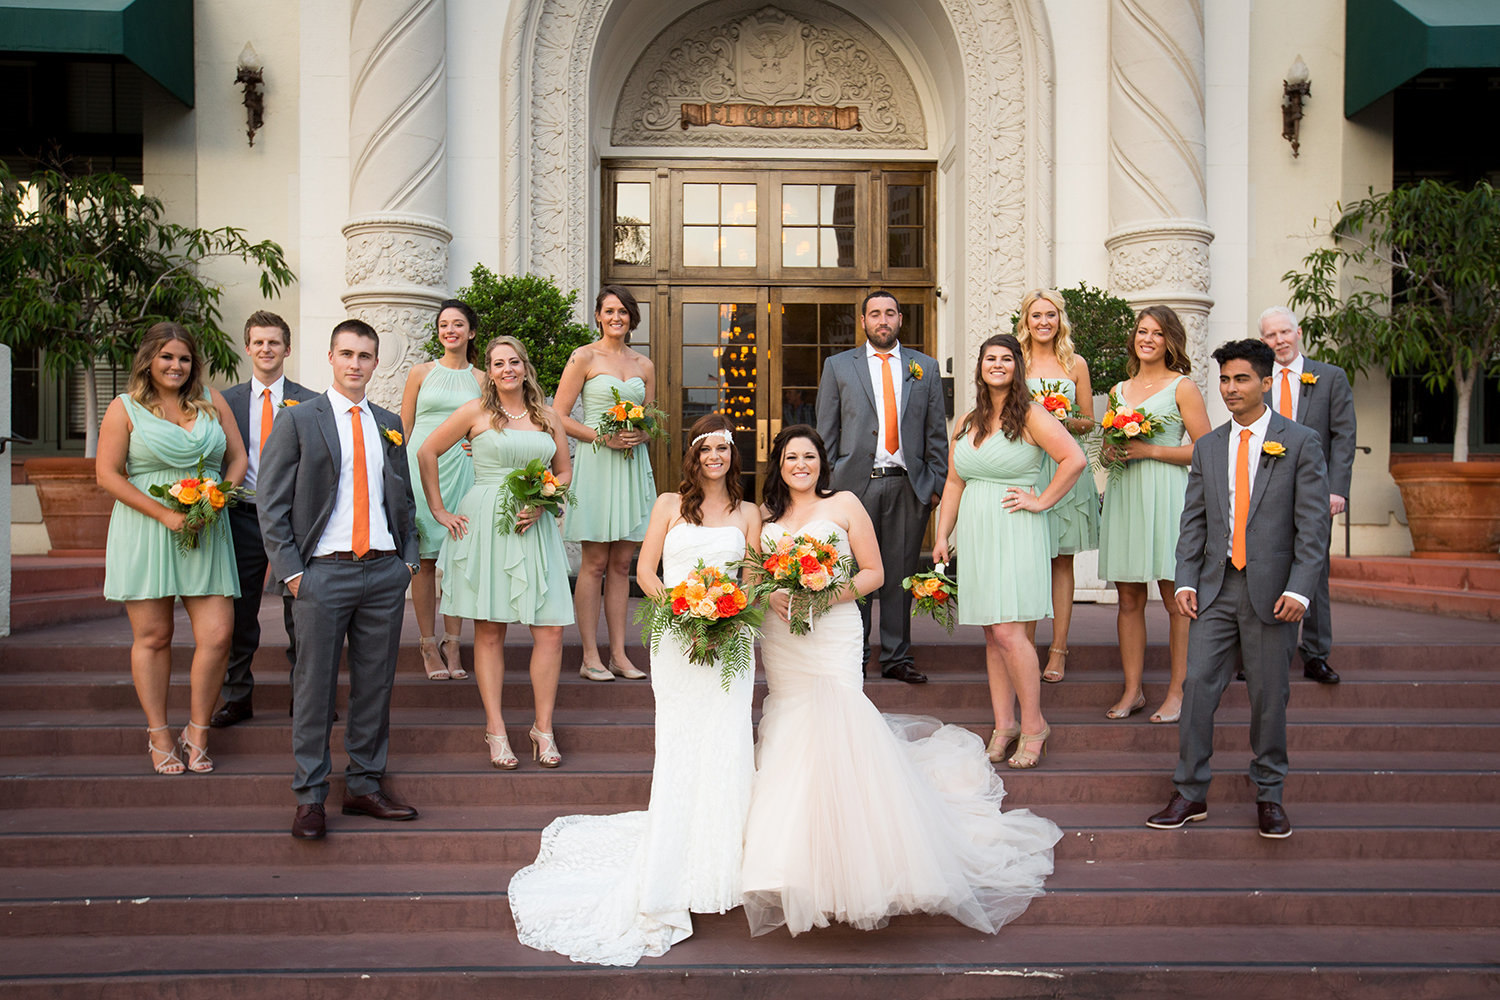 Modern Vogue styled wedding party photo